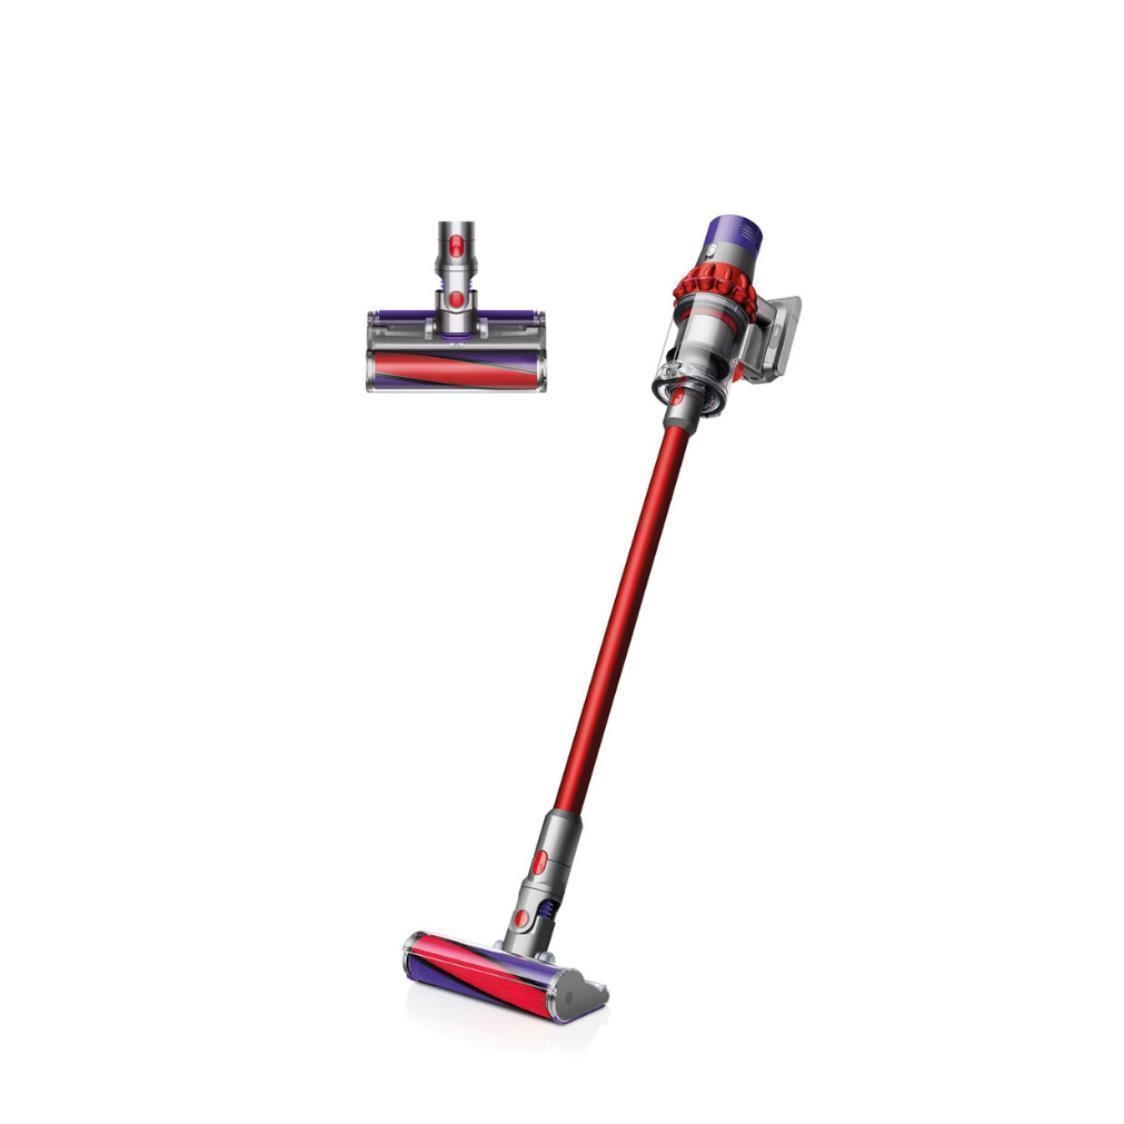 Dyson Cyclone V10 Fluffy Cord-free Vacuum Cleaner